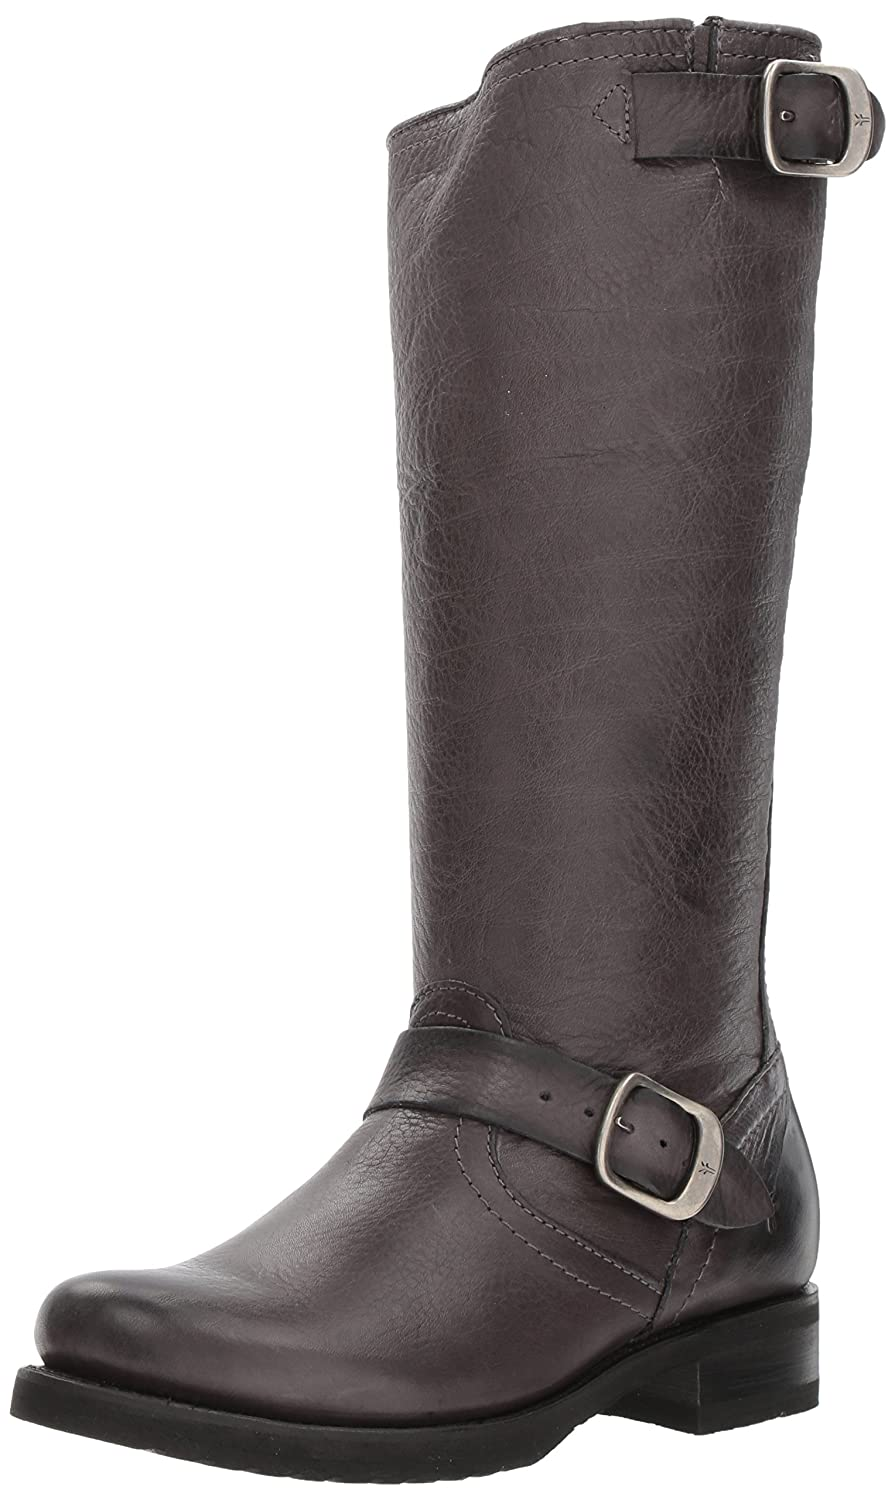 FRYE Women's Veronica 2 Slouch Boot B06X15VG8M 5.5 B(M) US|Smoke